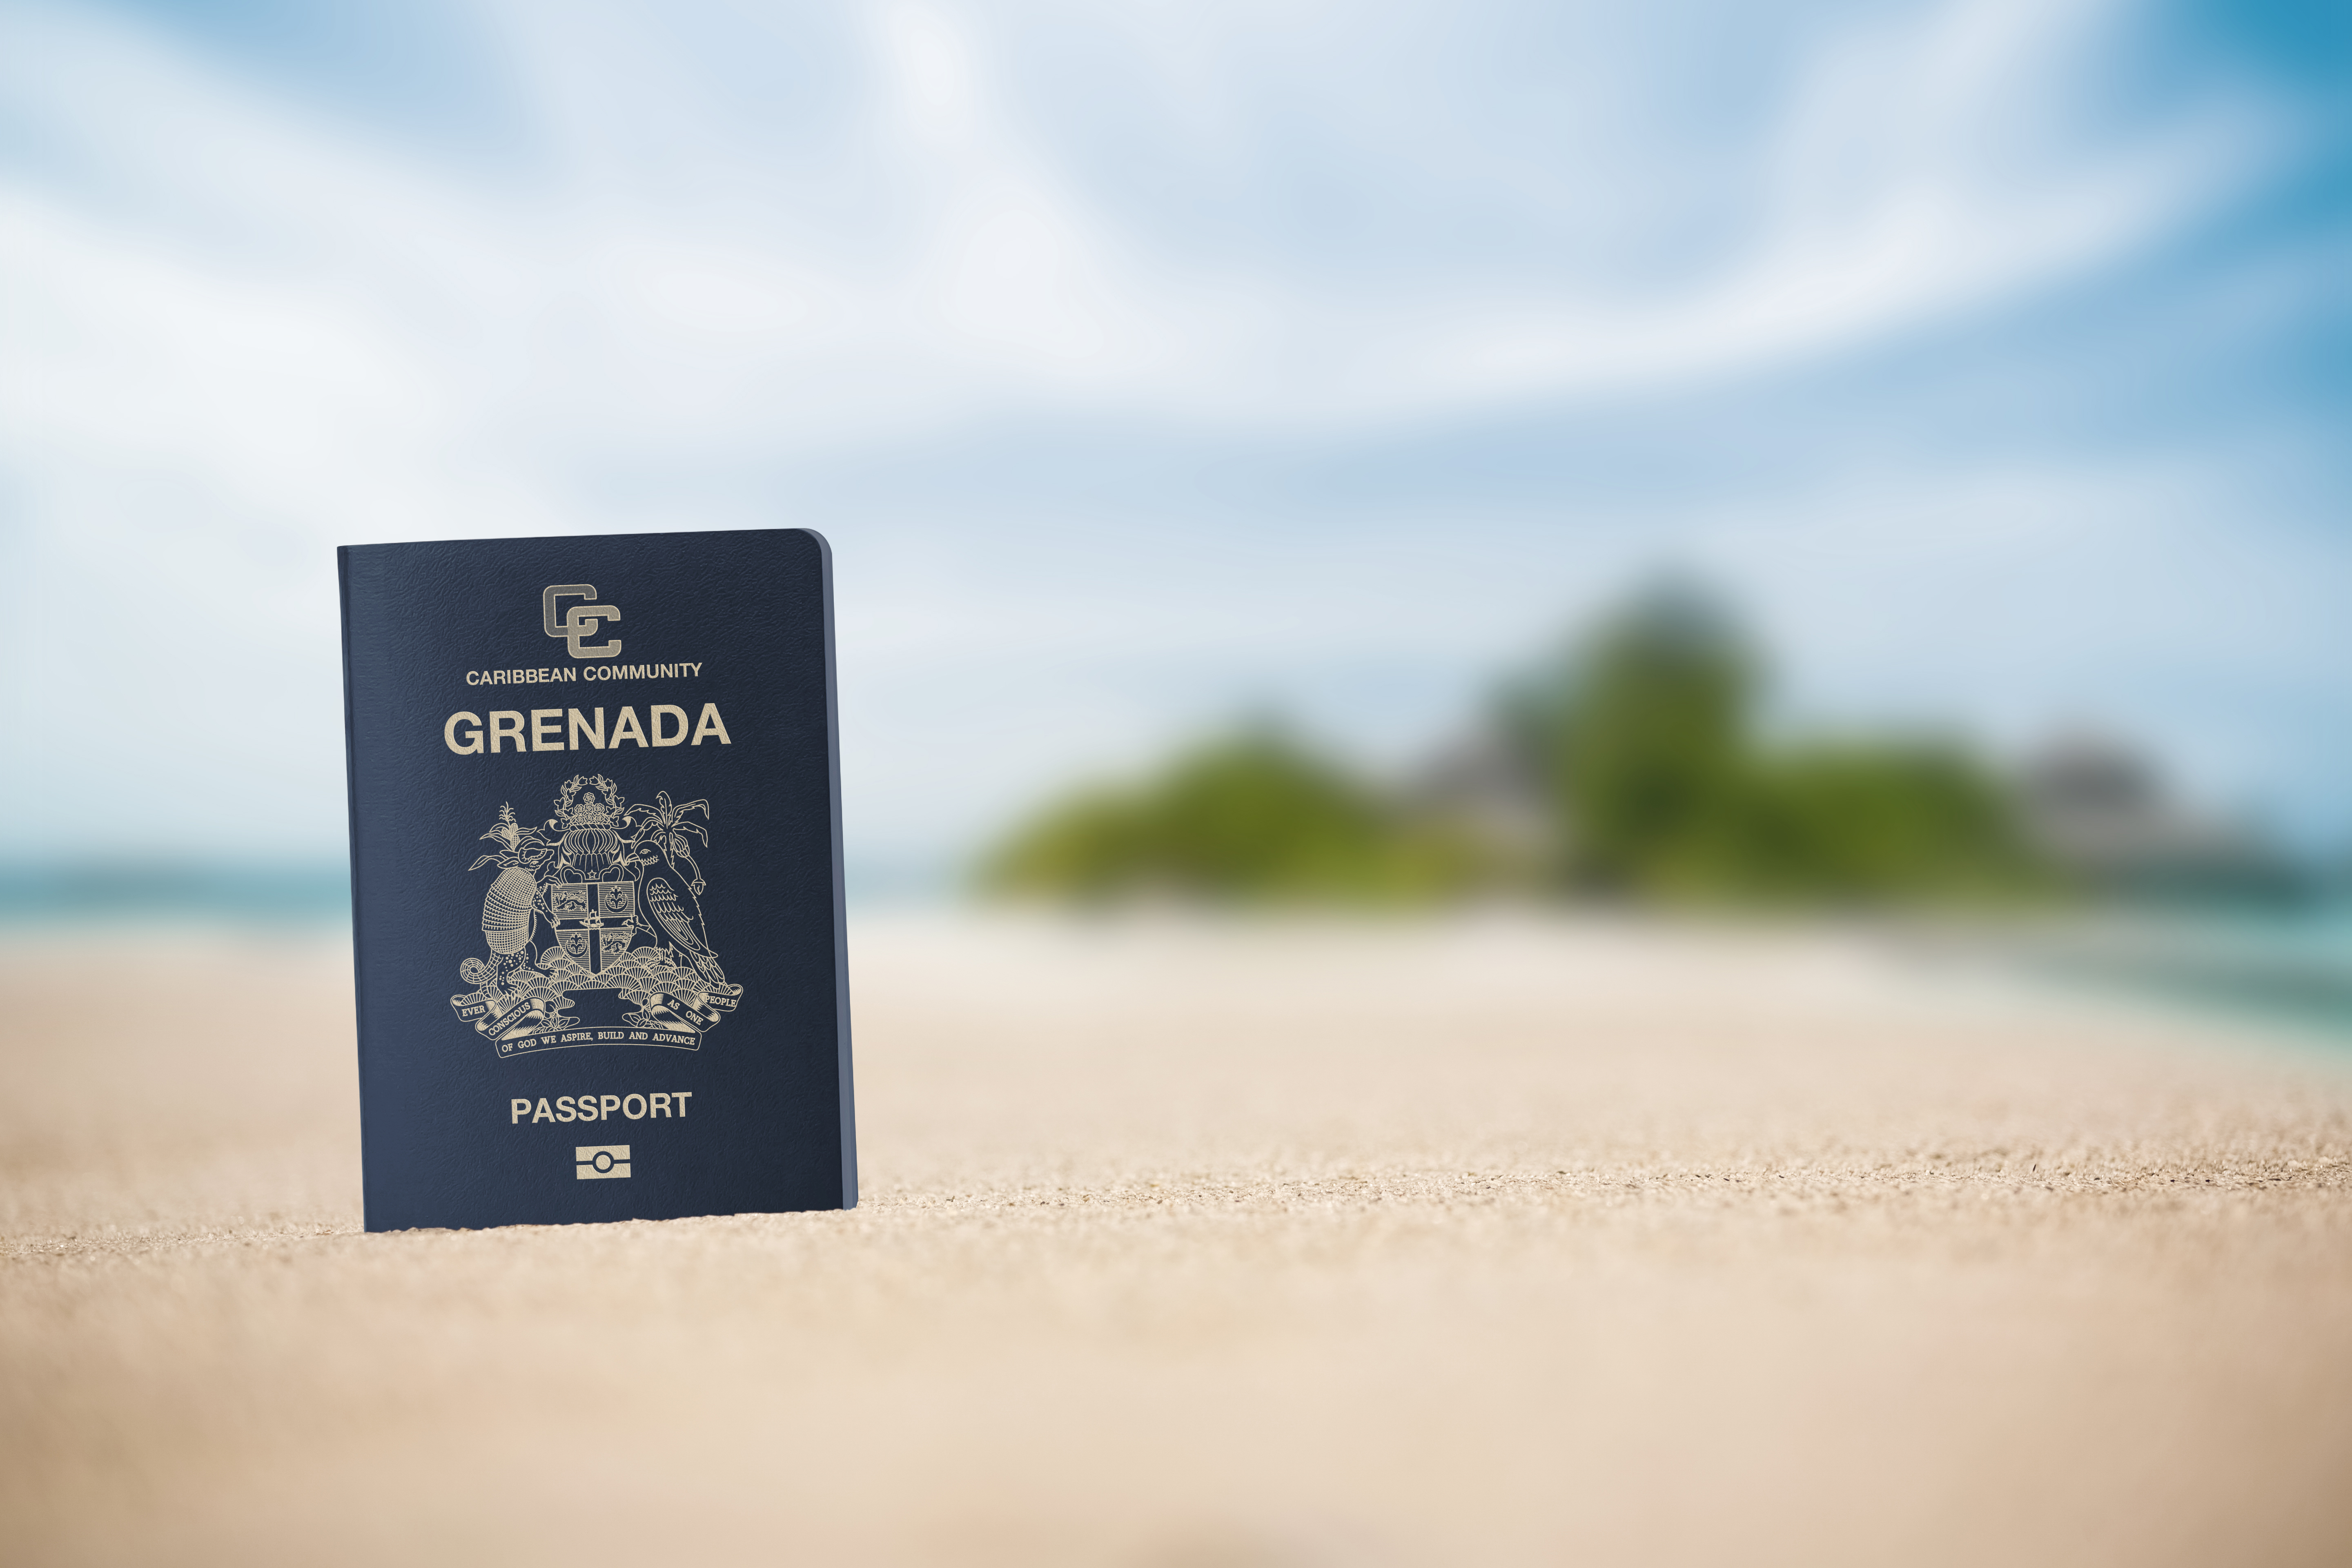 Passport on the background of the coast of Grenada symbolizes the citizenship of the Caribbean islands